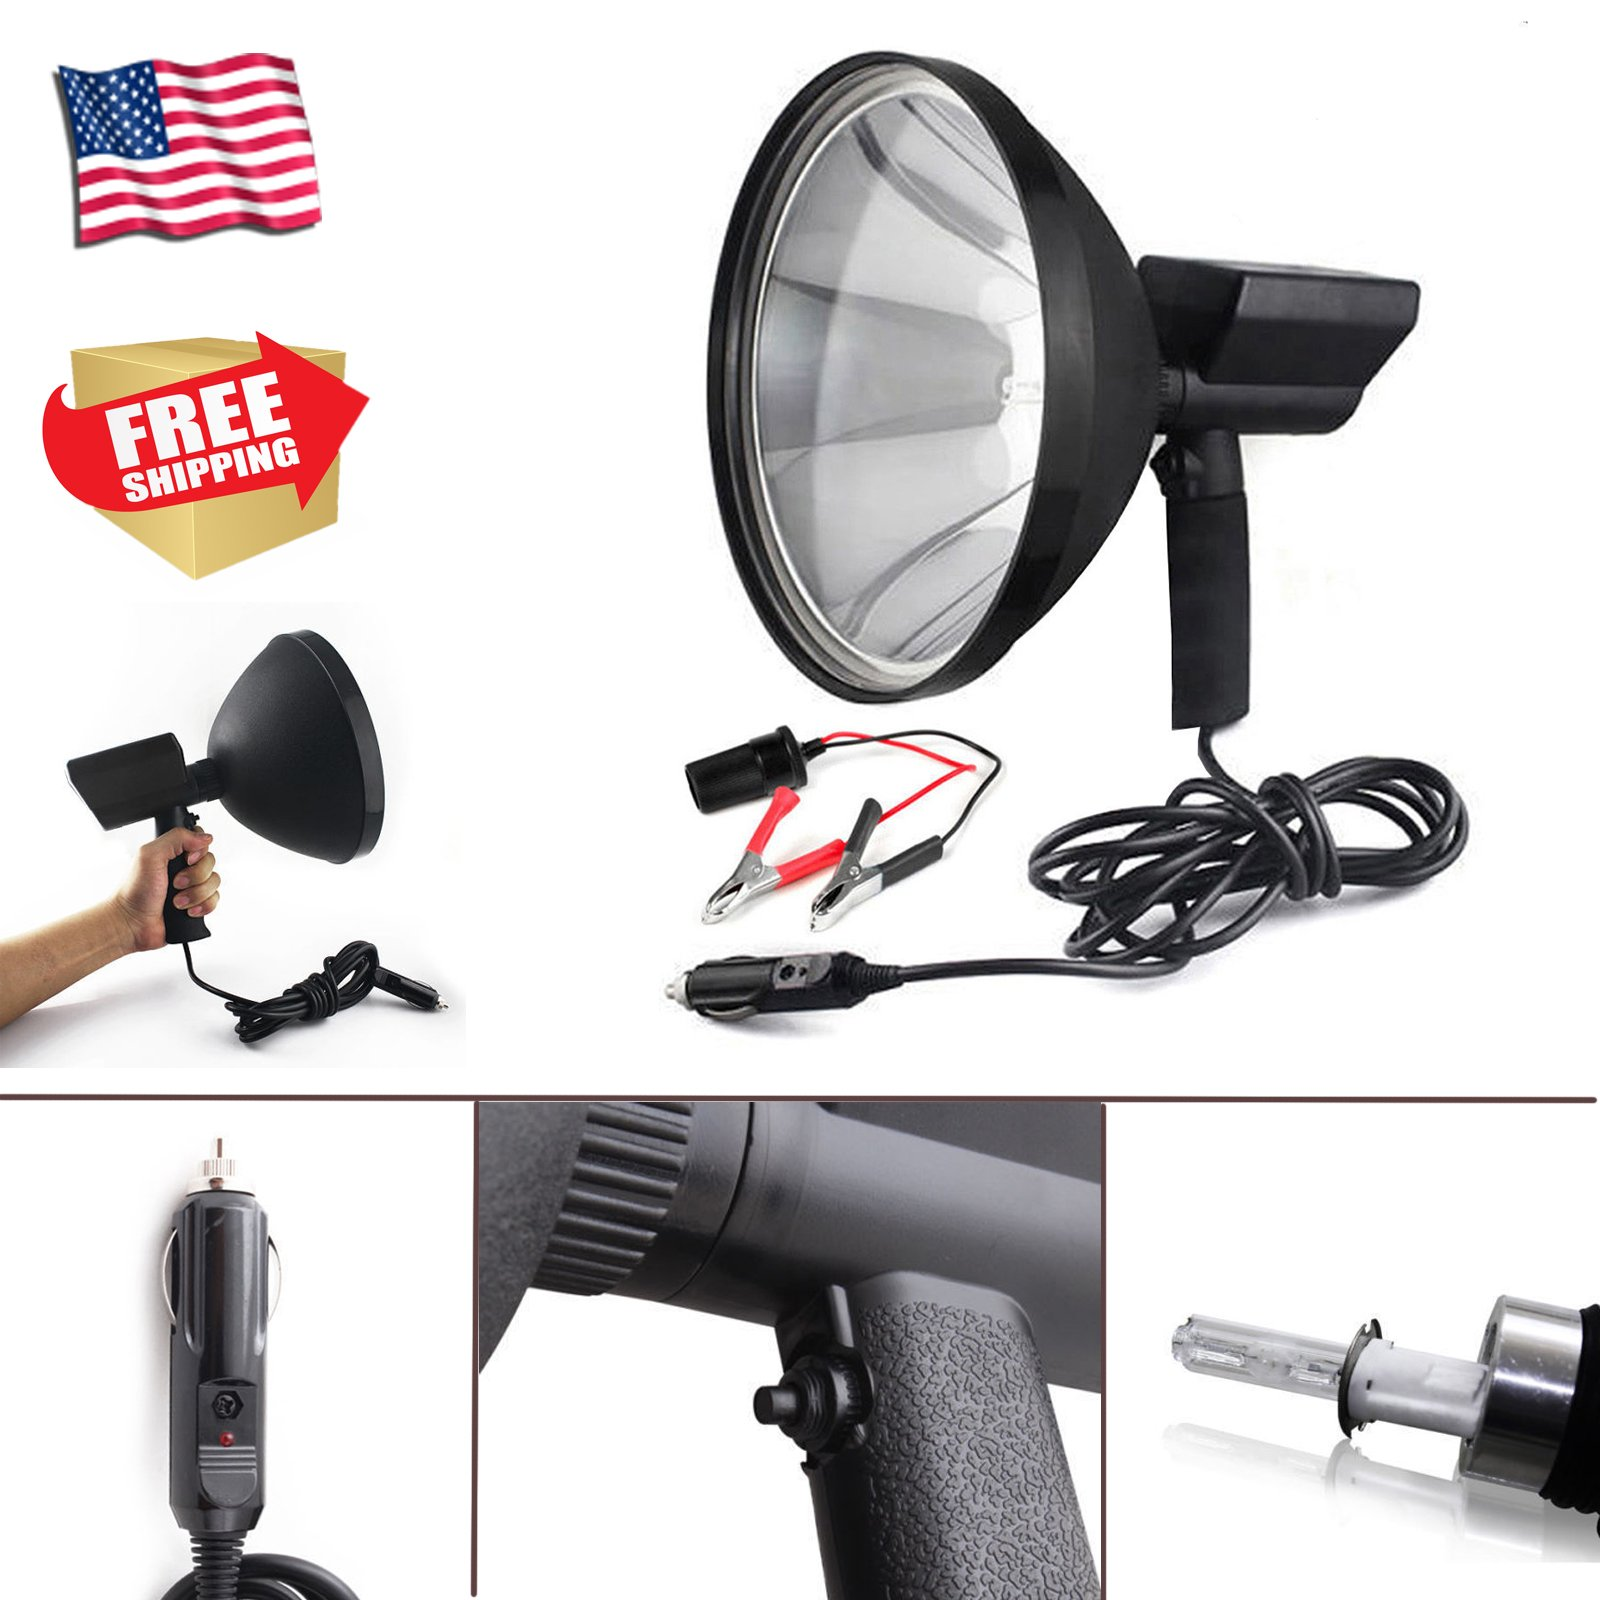 """Handheld Spotlight HID Xenon 9"""" 8000lm 6000K White 1 Mile Light Distance Extreme Bright High Power for Driving Camping Hunting Search Work + Battery Conversion Clamps"""